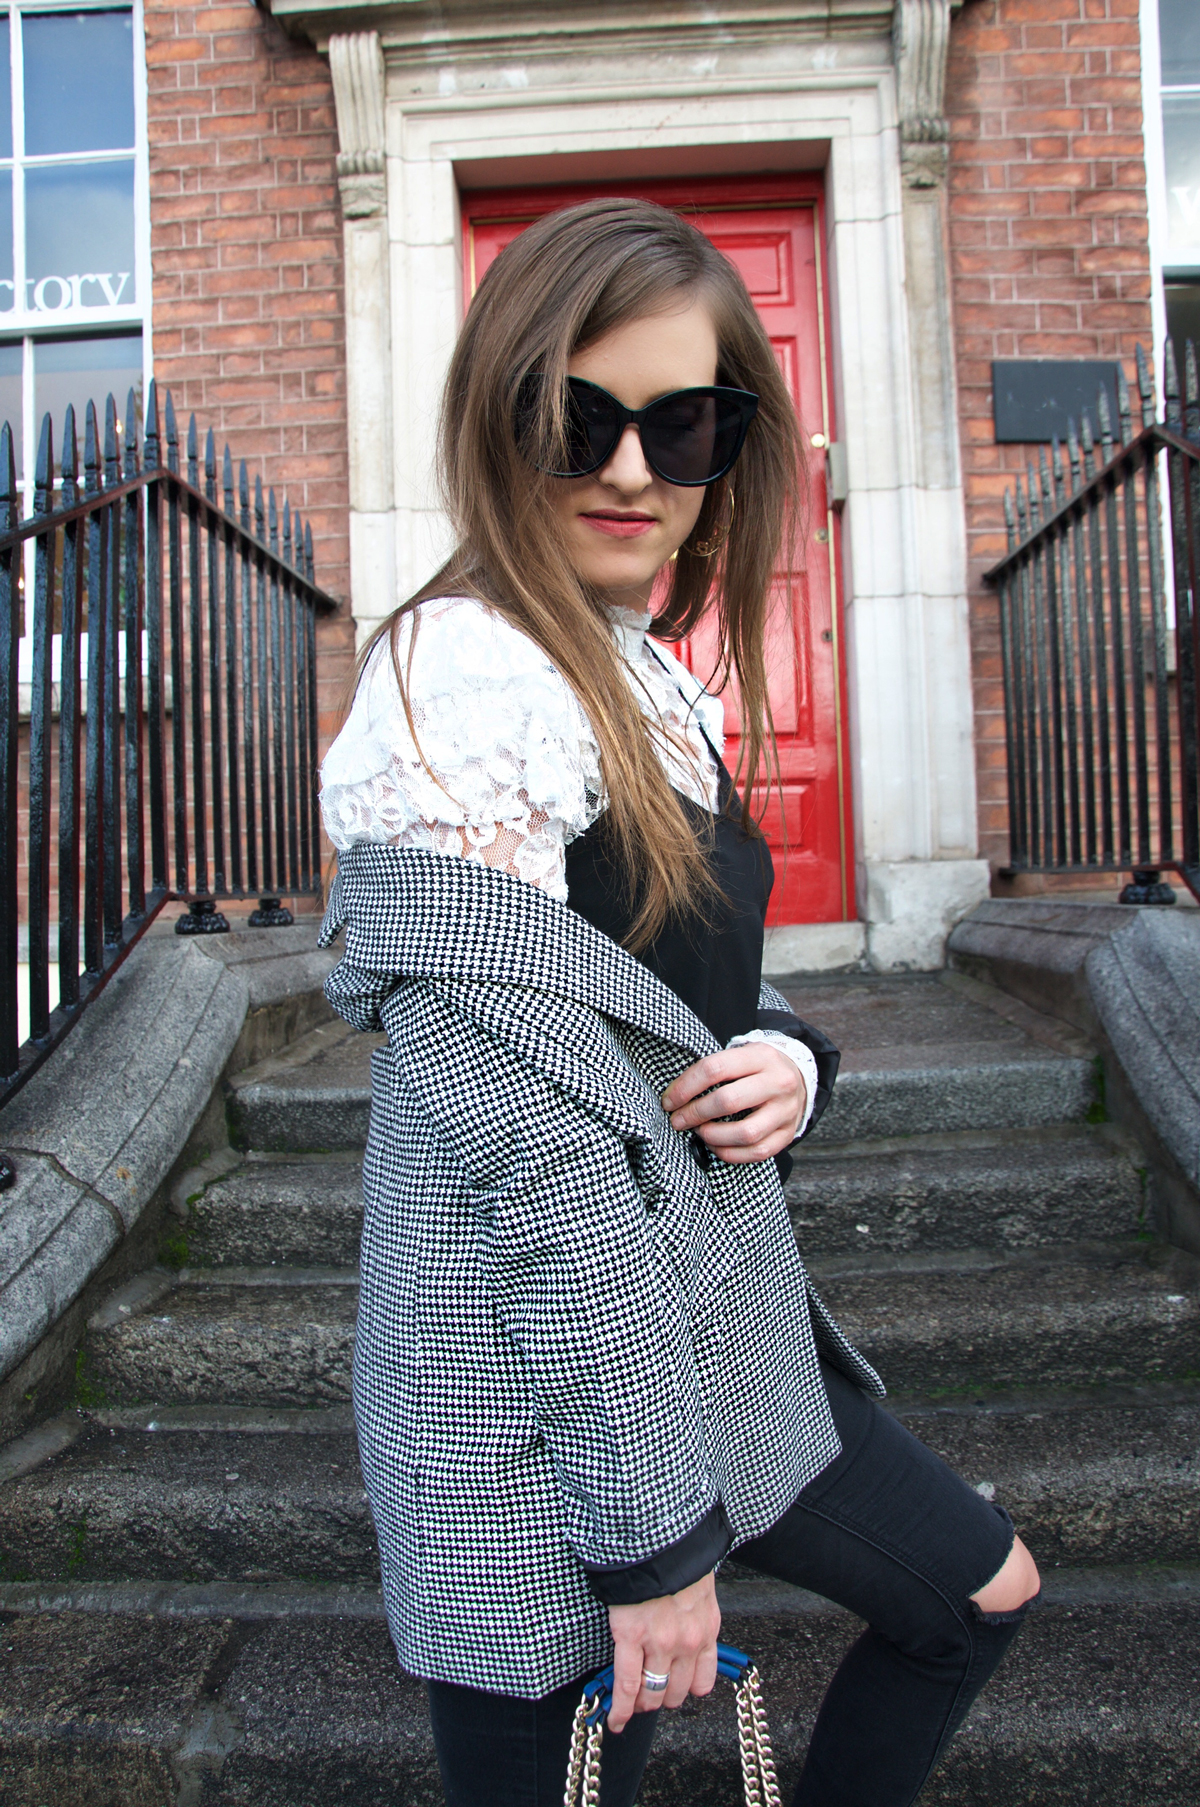 Fashion blog, Strawberries 'n' Champagne by Andrea Steiner says what she love about Layering Look.